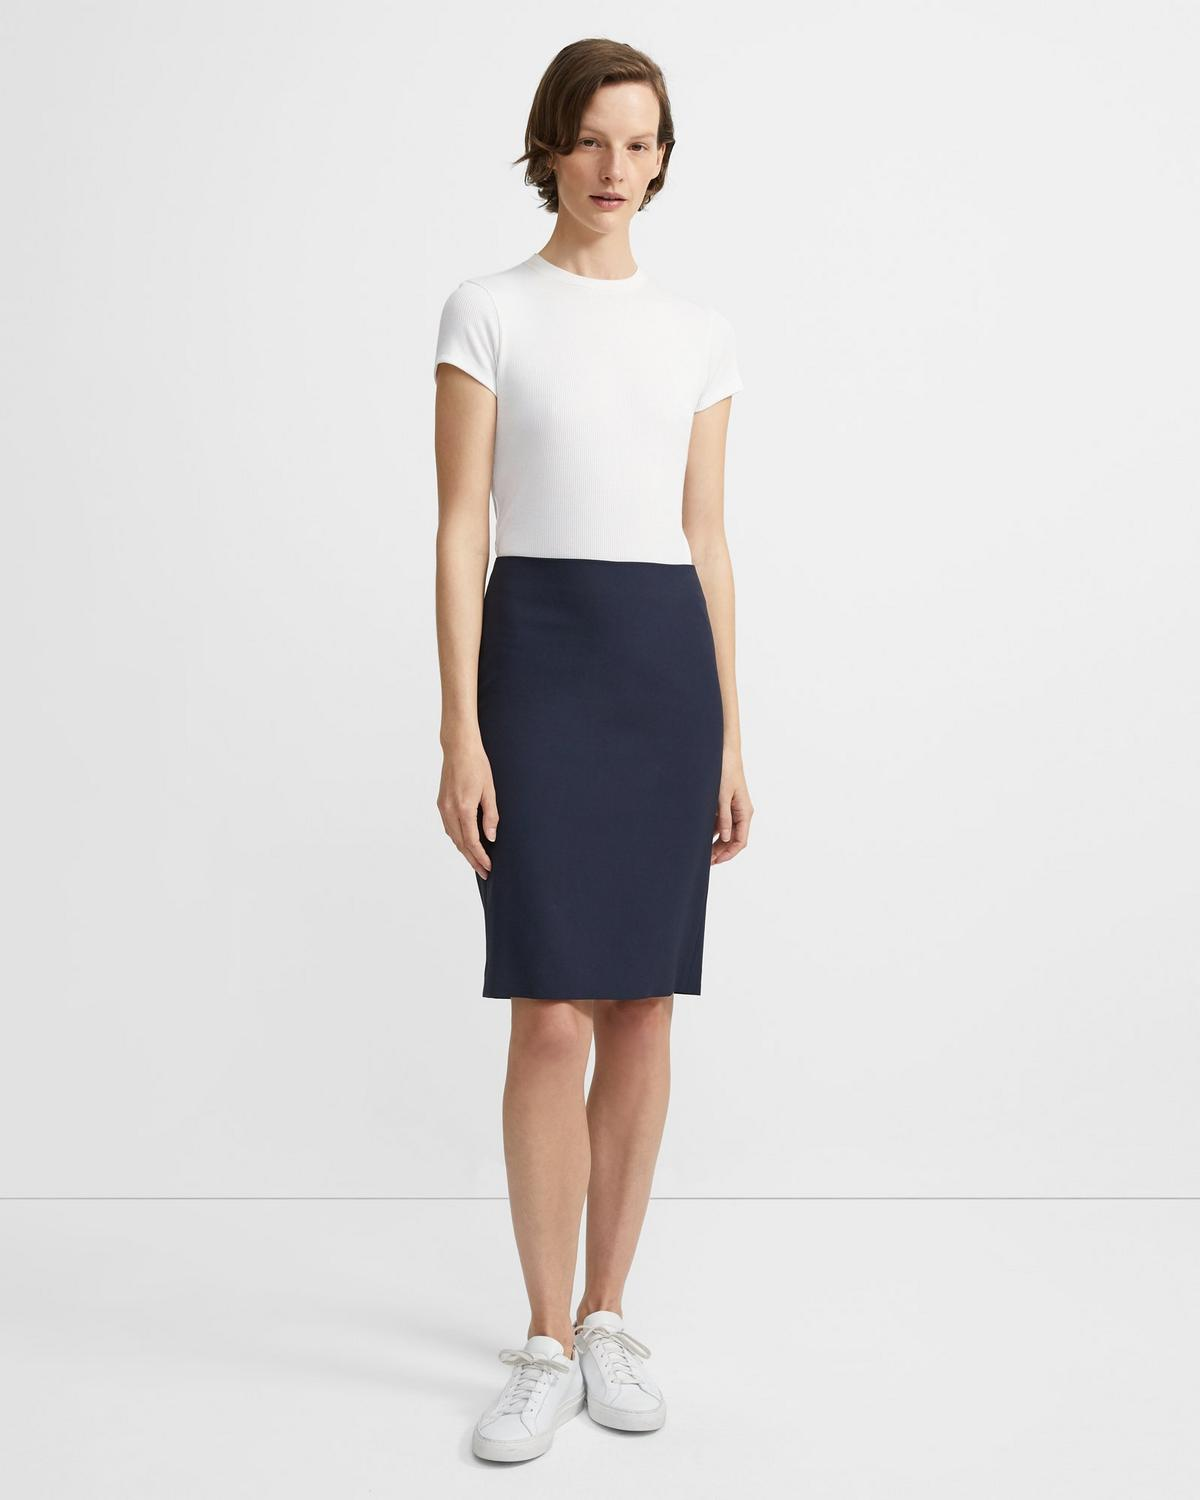 ead505603 ... Stretch Wool Pencil Skirt 2 - click to view larger image